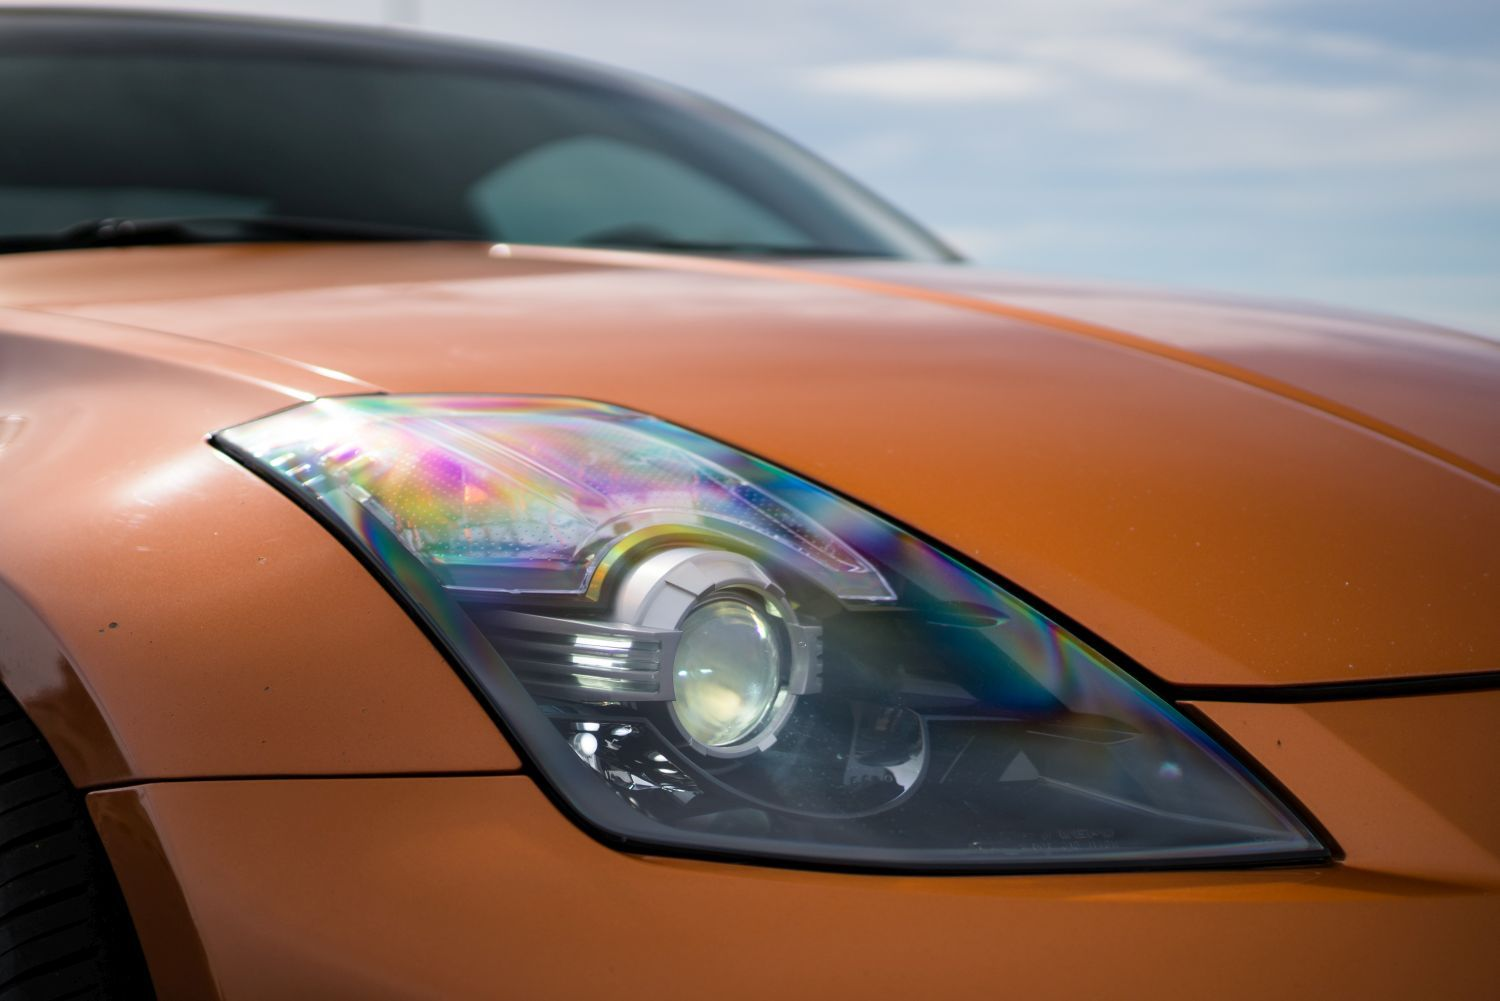 Depo Blacked Out Bi Xenon Projector Headlight Set Nissan 350z Z33 In Stock Limited Quantities 315 1162pxush2 Czp 26033 Cd010 Depowr Ada Ns 350z Htox Concept Z Performance